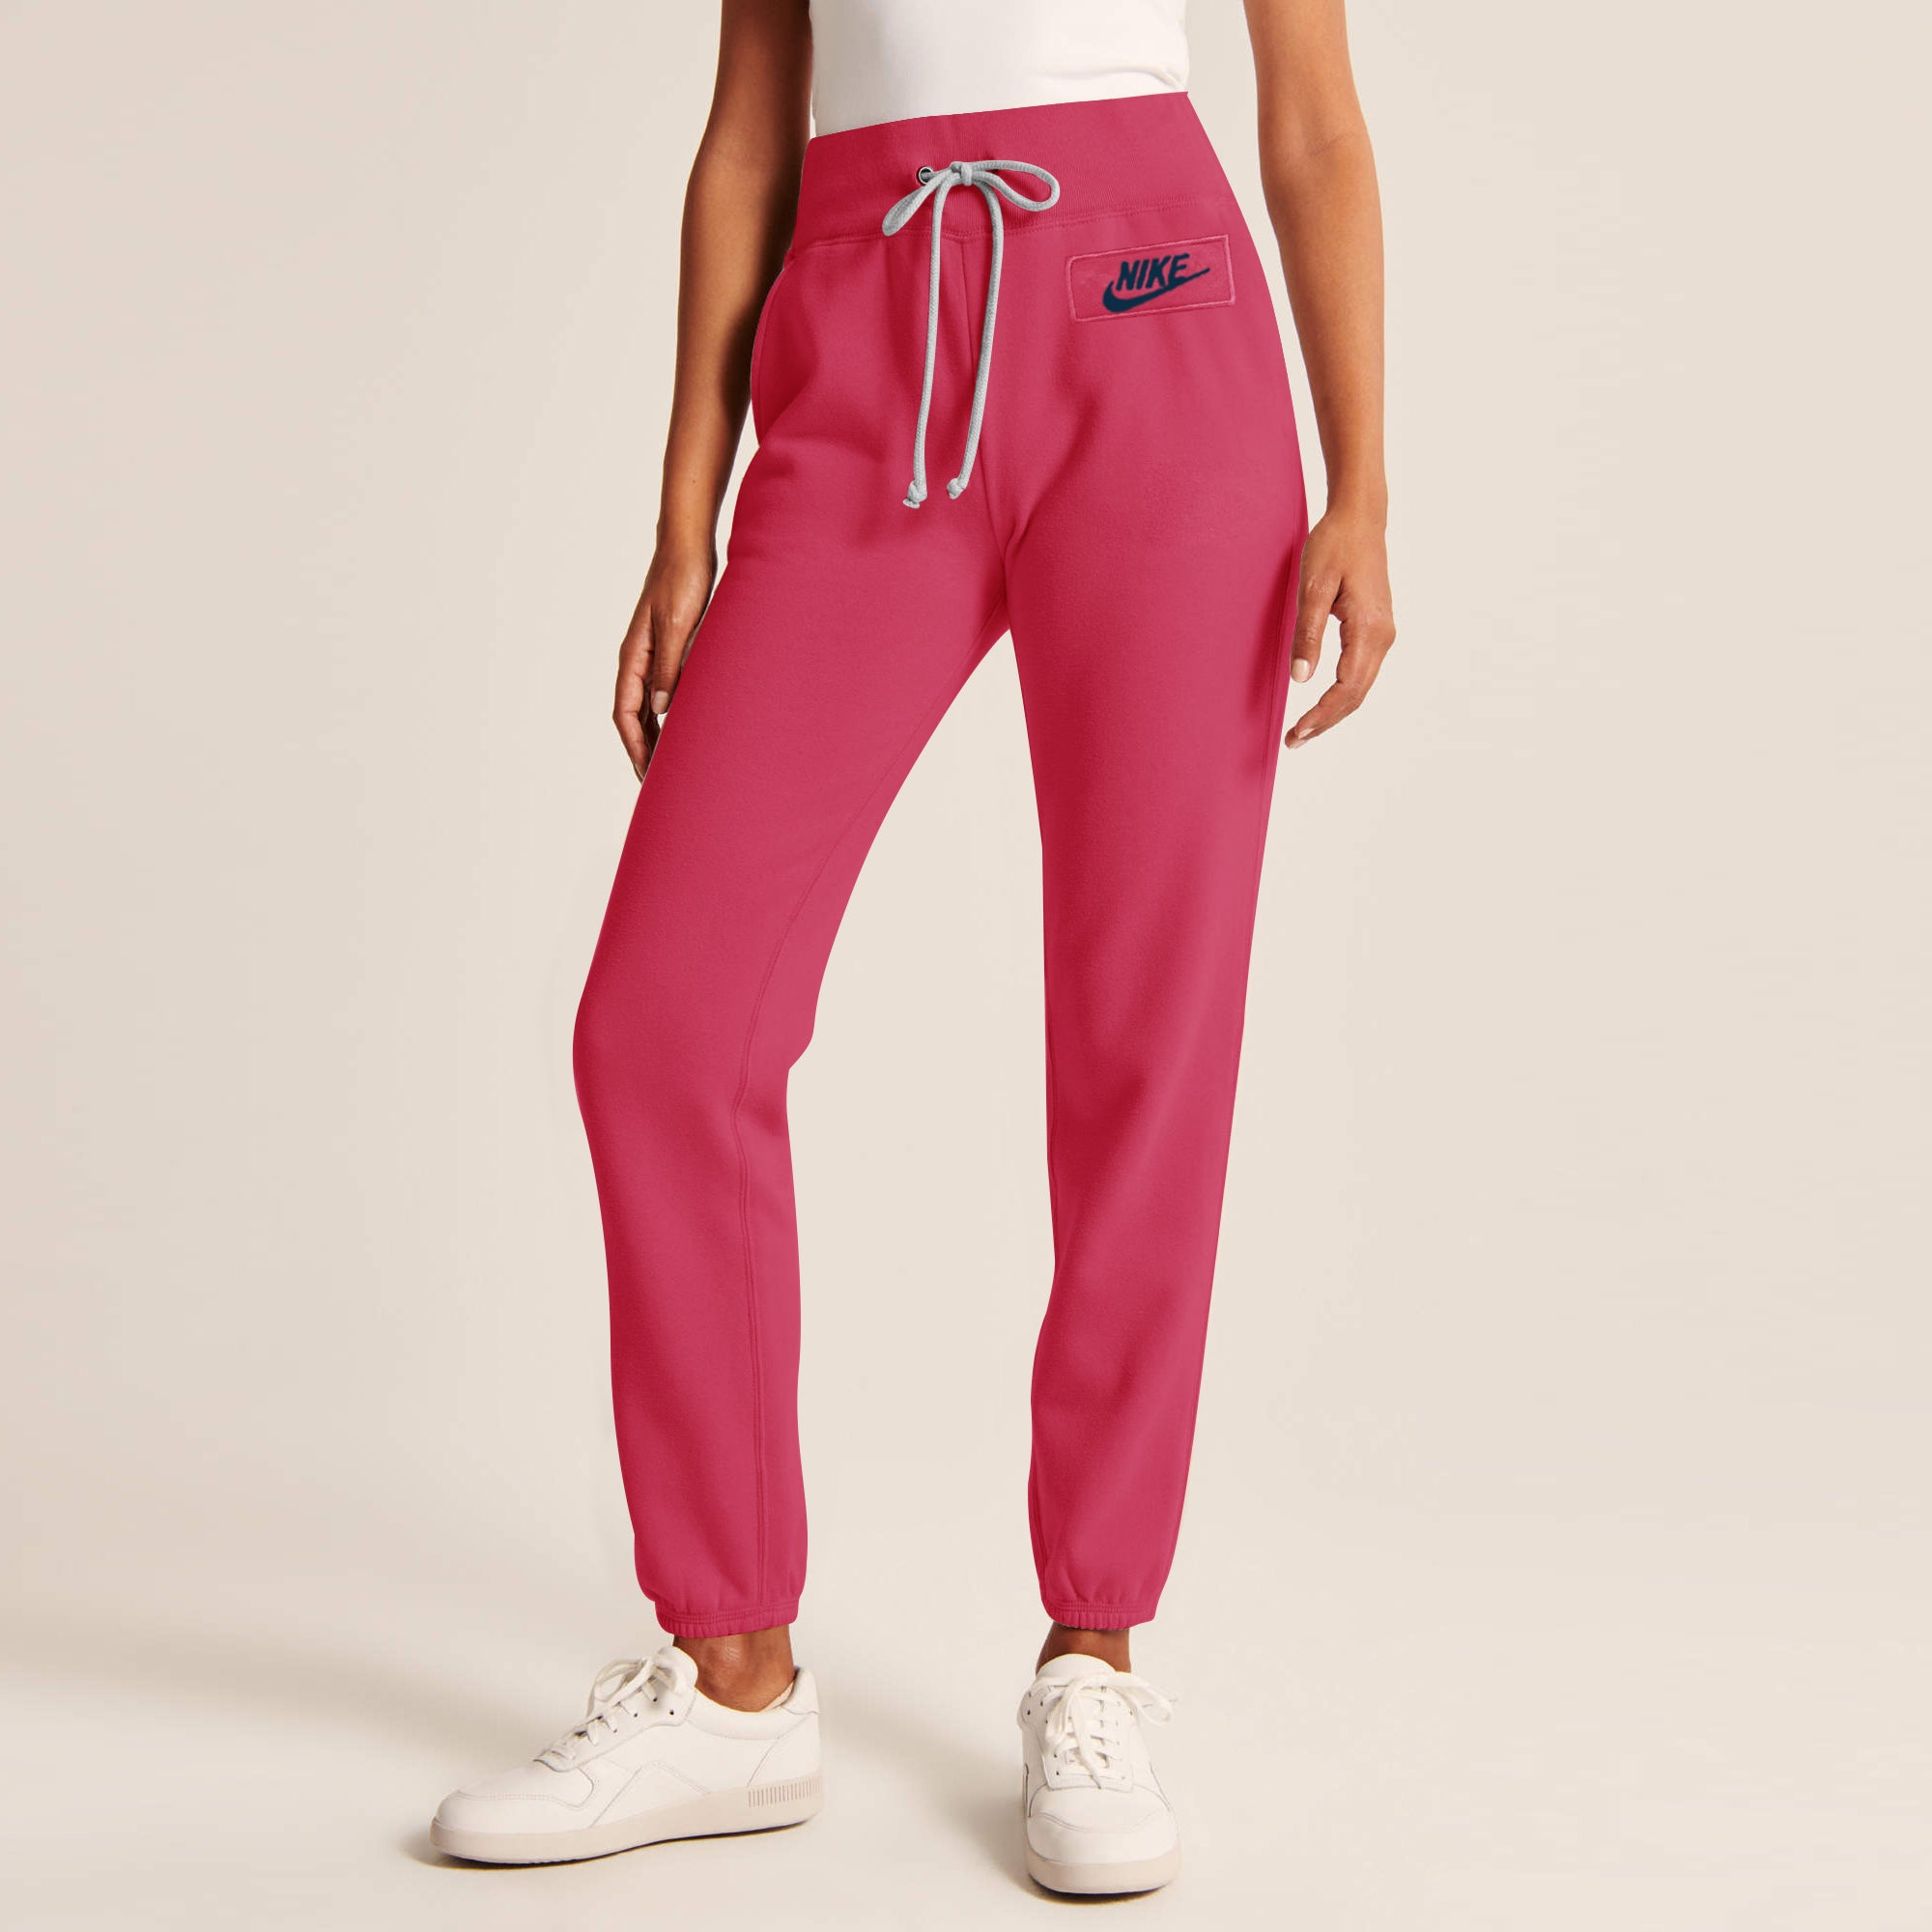 NK Fleece Slim Fit Trouser For Ladies-Pink With Navy Embroidery-SP4007